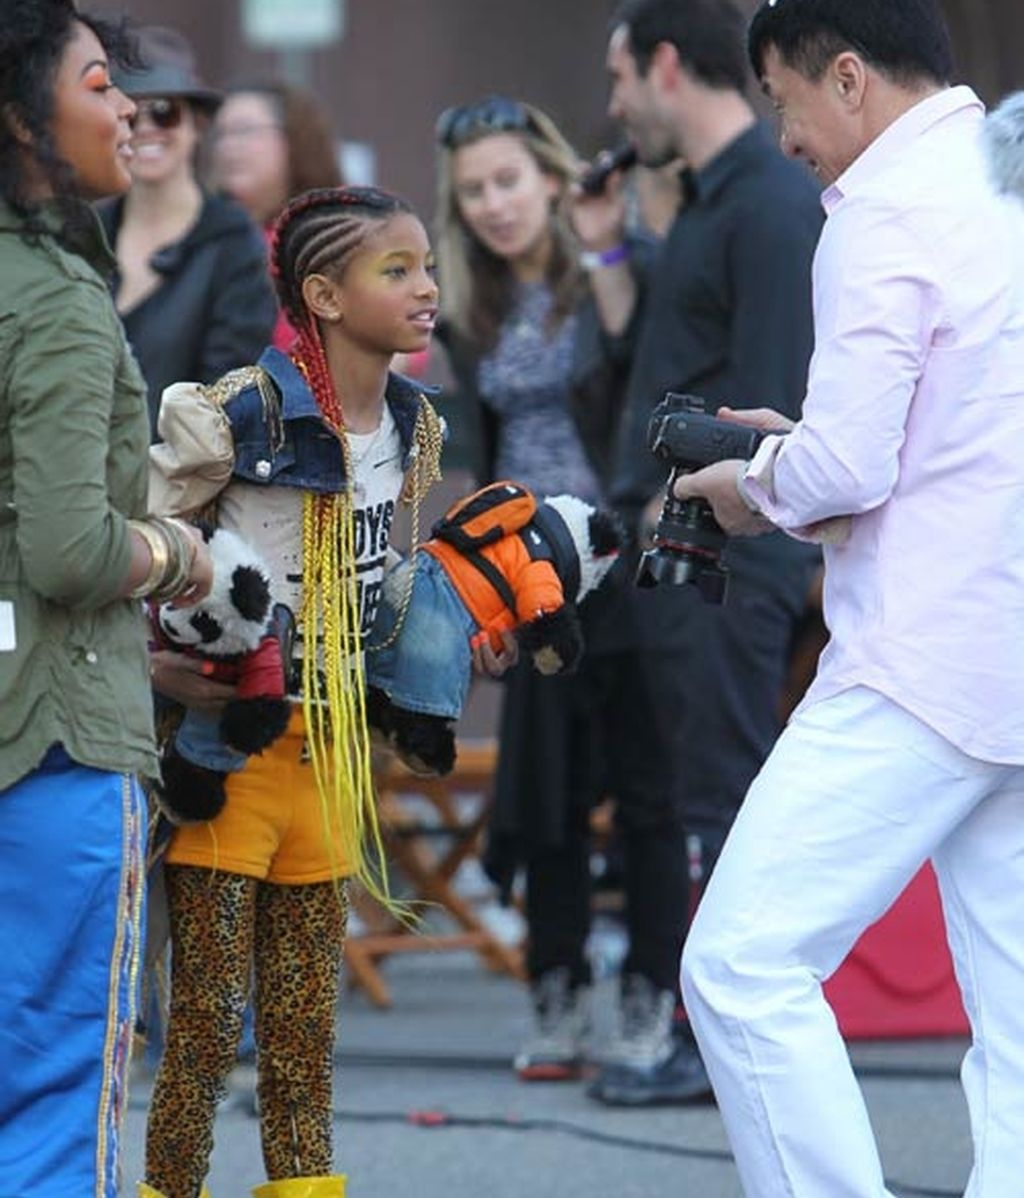 El estilismo imposible de Willow Smith en su nuevo videoclip